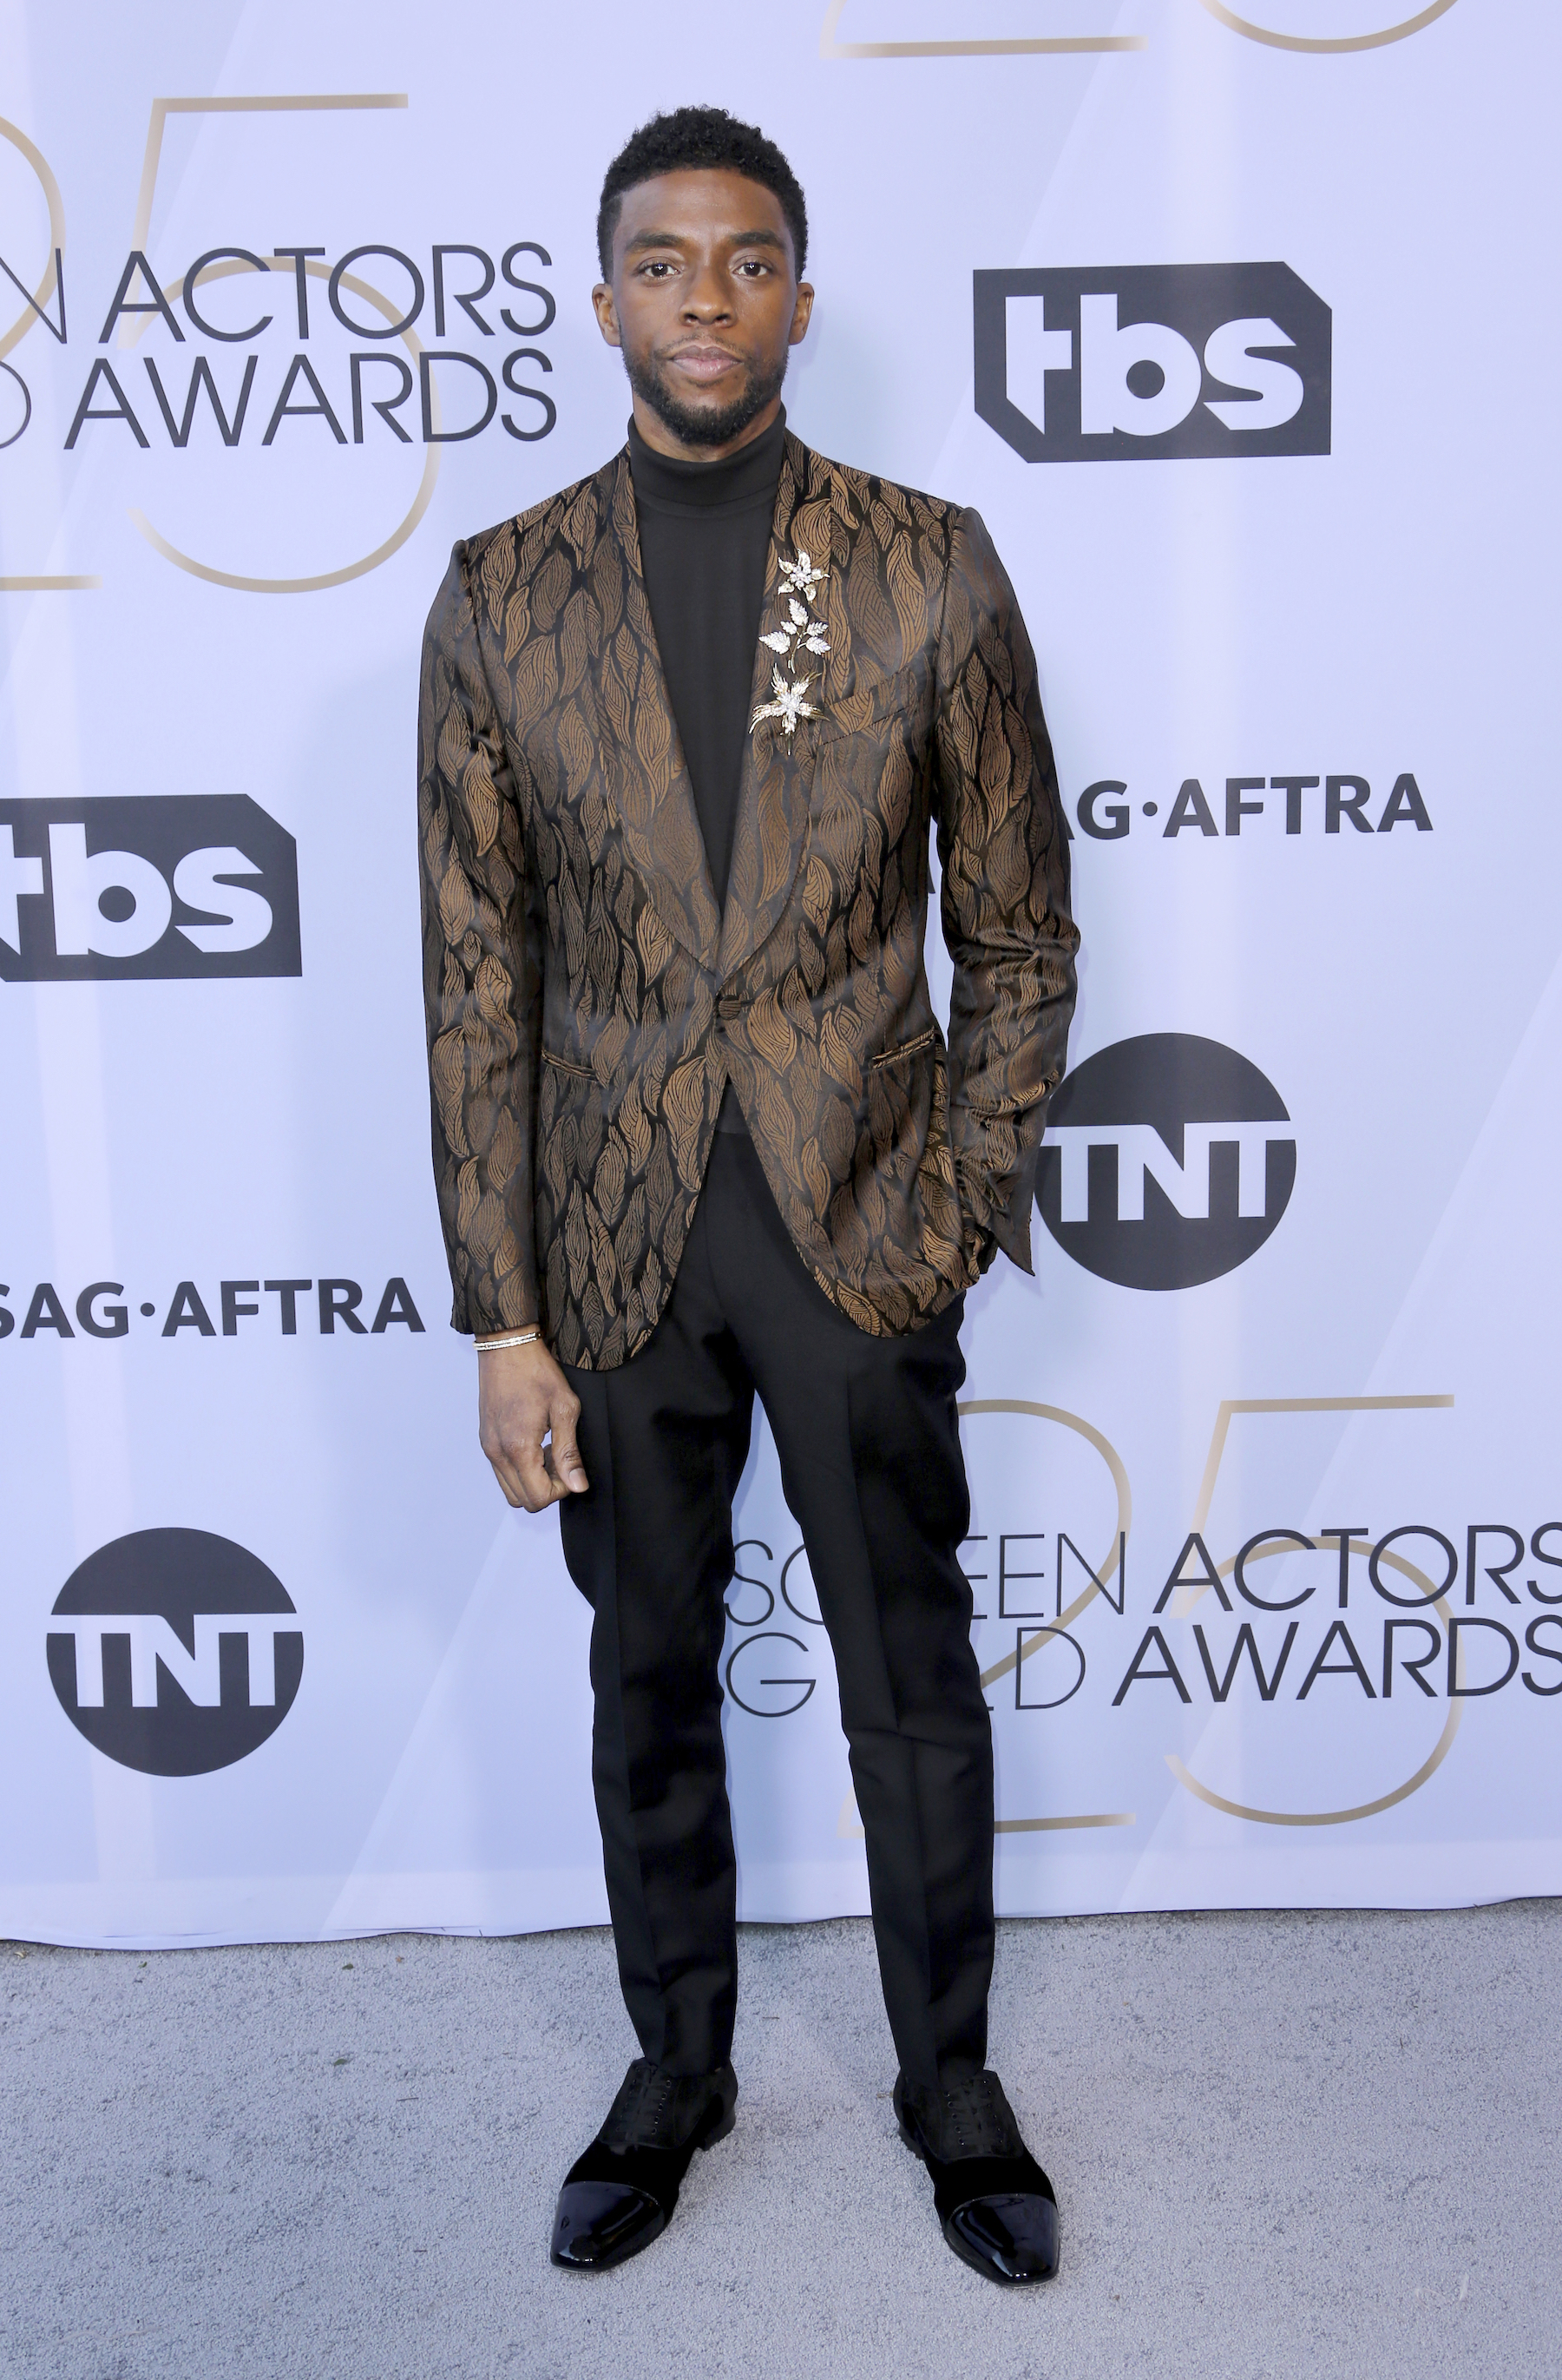 "<div class=""meta image-caption""><div class=""origin-logo origin-image ap""><span>AP</span></div><span class=""caption-text"">Chadwick Boseman arrives at the 25th annual Screen Actors Guild Awards at the Shrine Auditorium & Expo Hall on Sunday, Jan. 27, 2019, in Los Angeles. (Willy Sanjuan/Invision/AP)</span></div>"